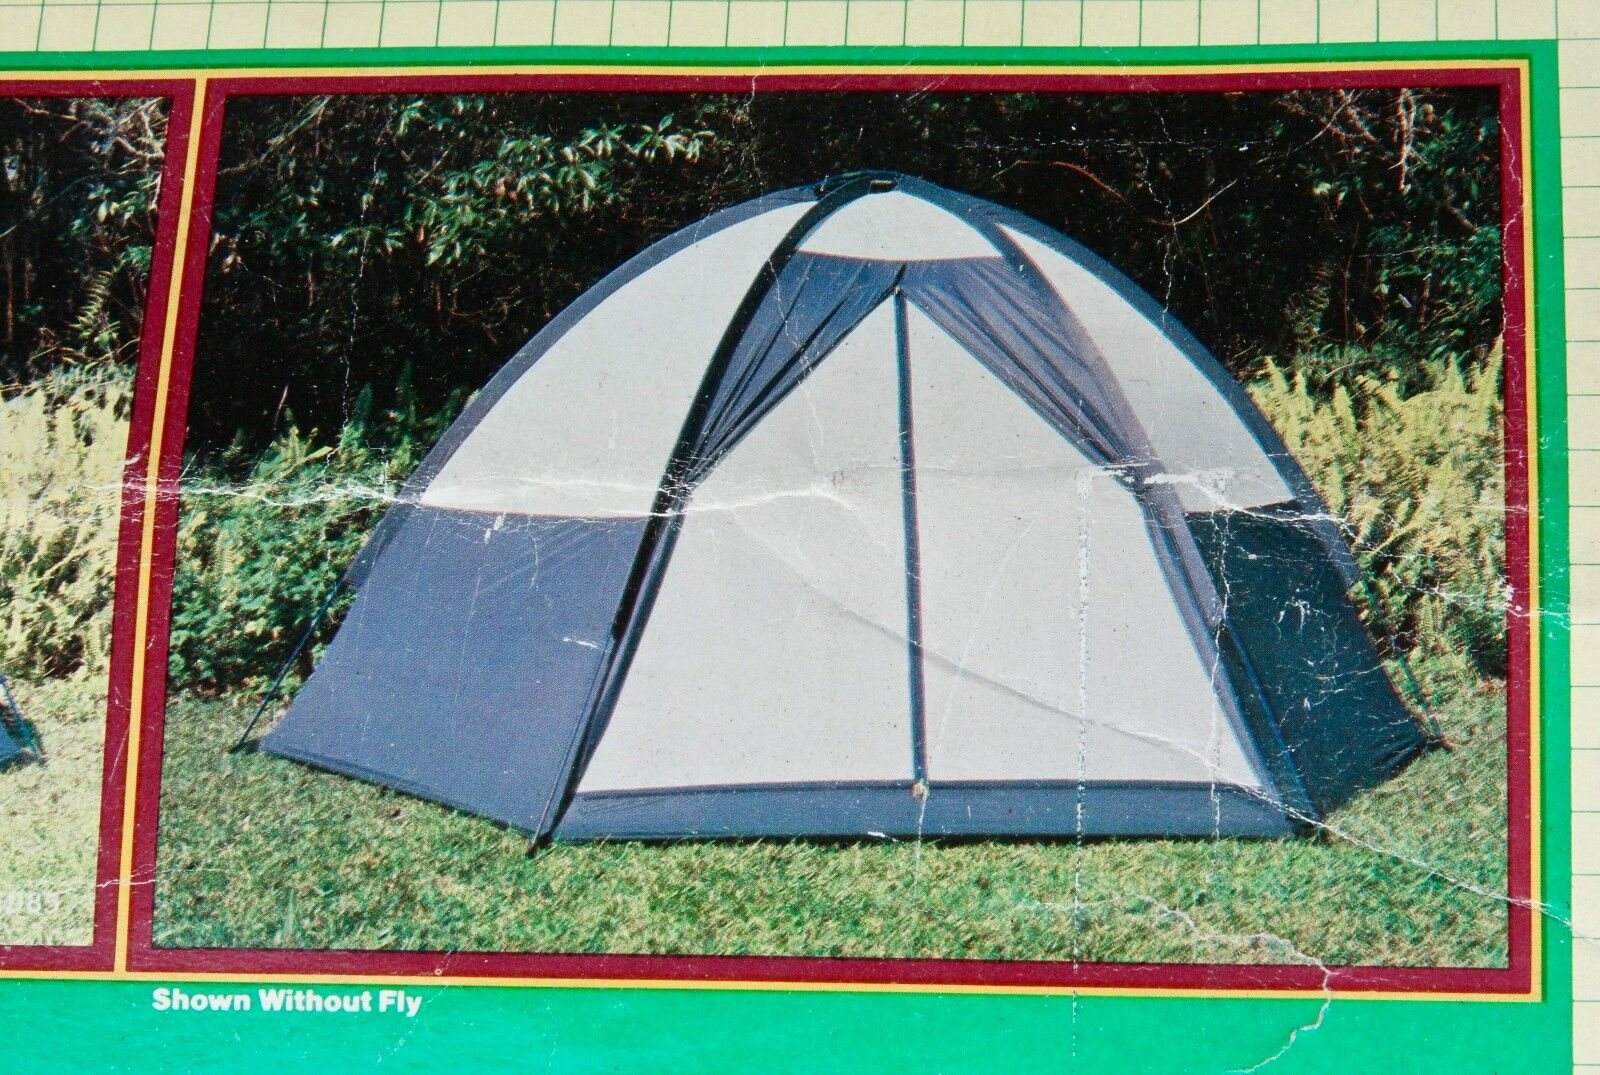 Family Dome Tent - 10' x 12' x 6' Nylon Fiberglass Zipper Mesh Camping Outdoor